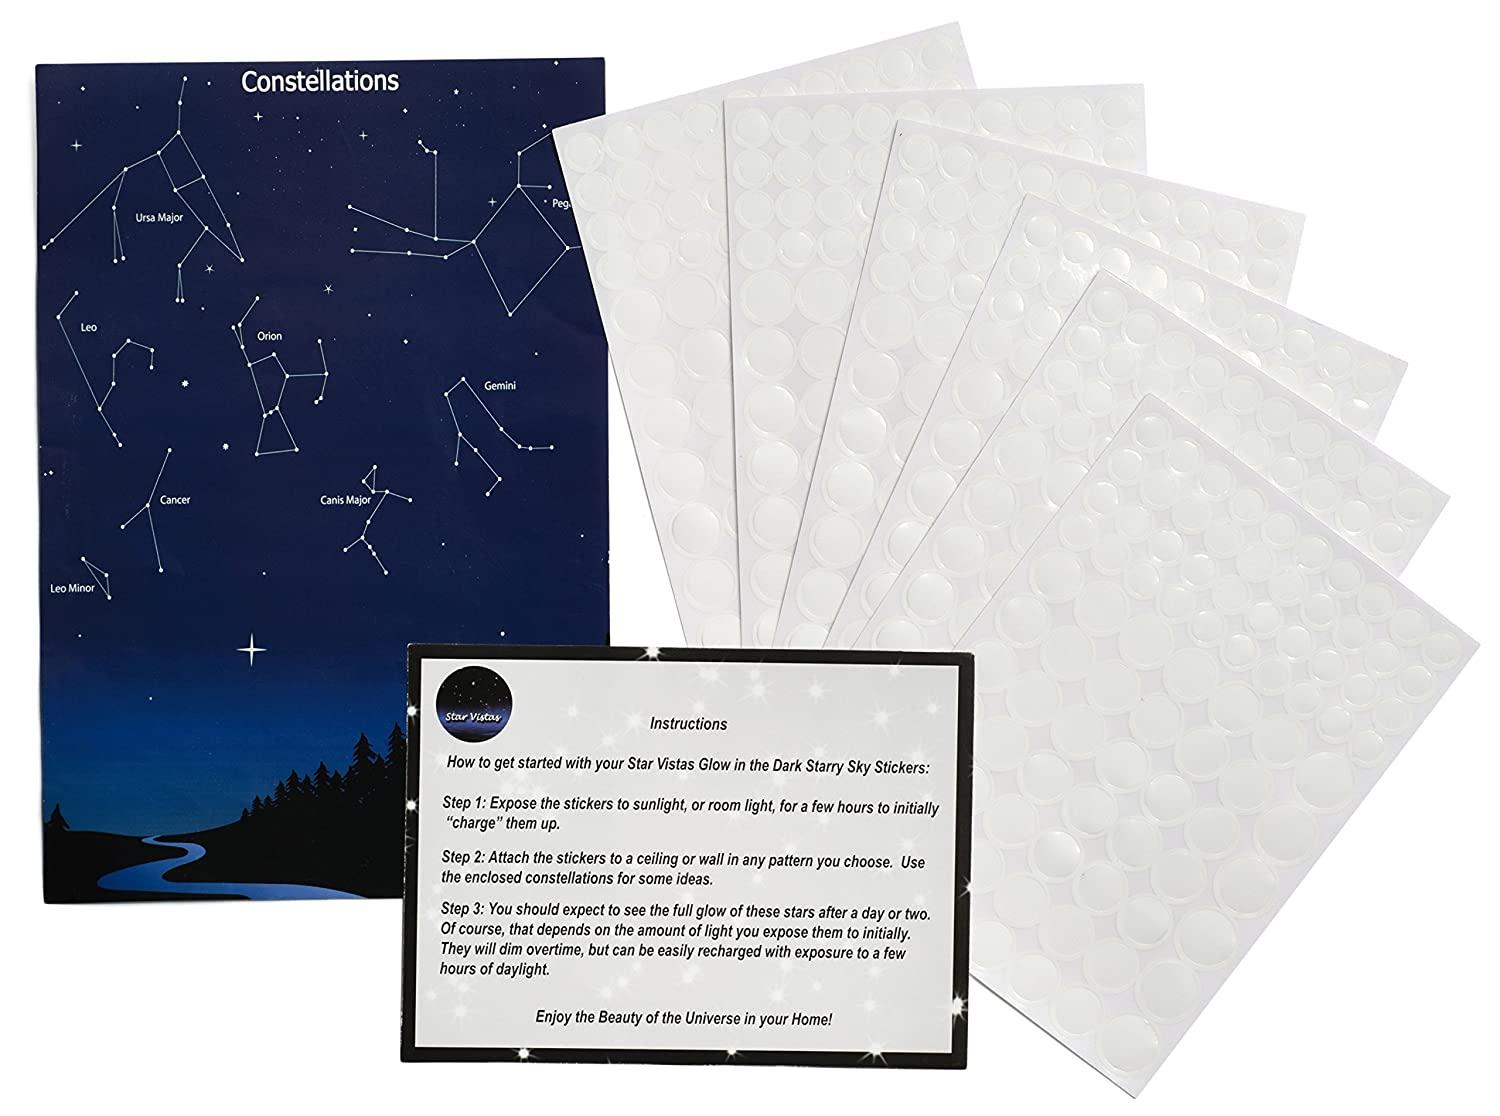 amazon com glow in the dark star stickers 528 pack with bonus amazon com glow in the dark star stickers 528 pack with bonus constellation map long lasting self adhesive dots provide realistic starry sky view on